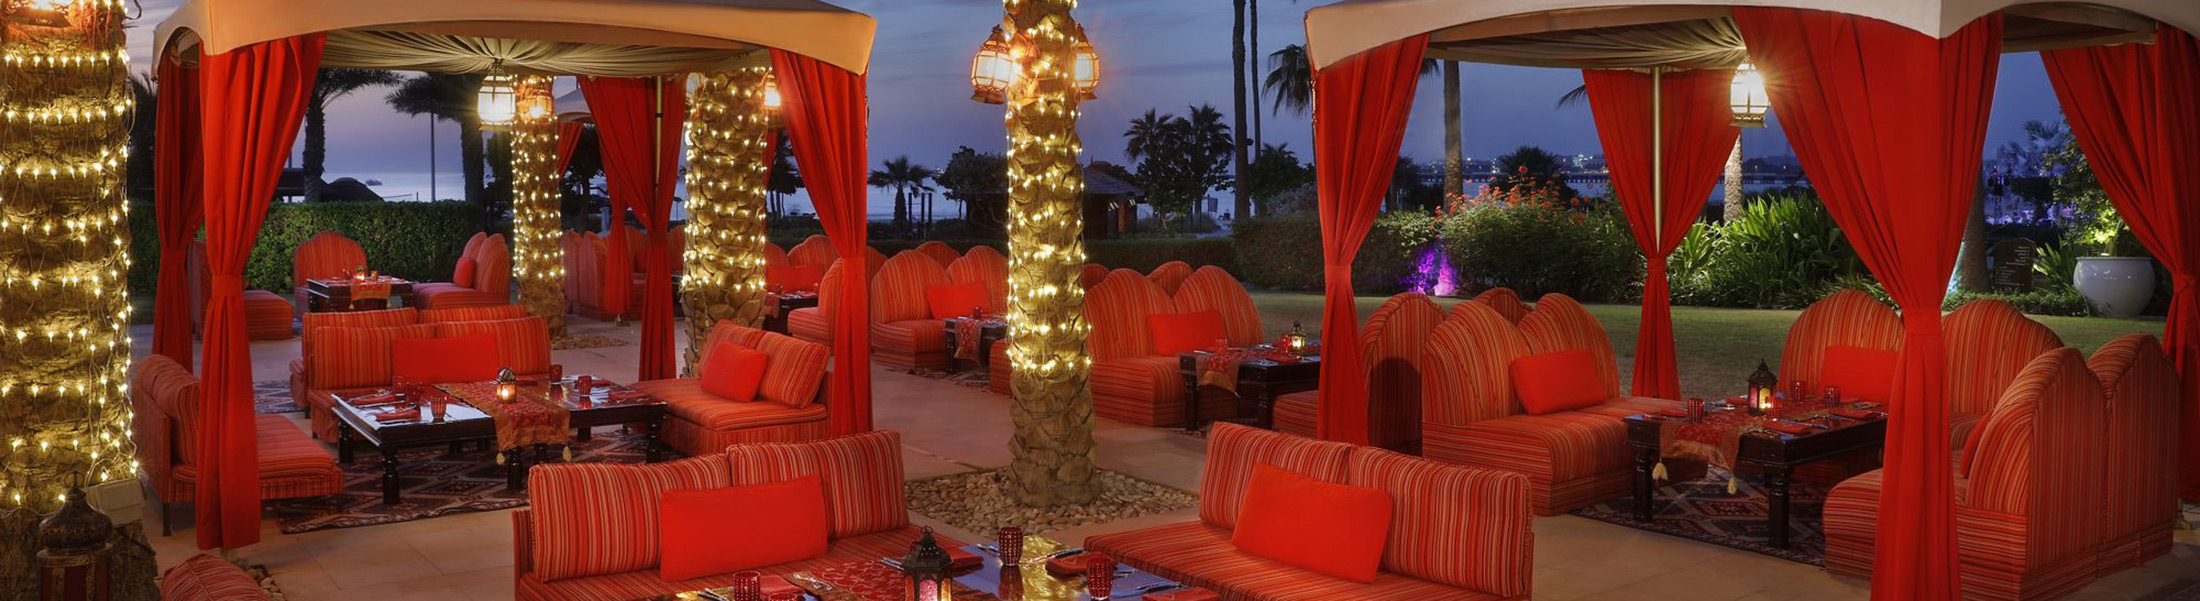 Dining in cabanas at Ritz-Carlton Dubai